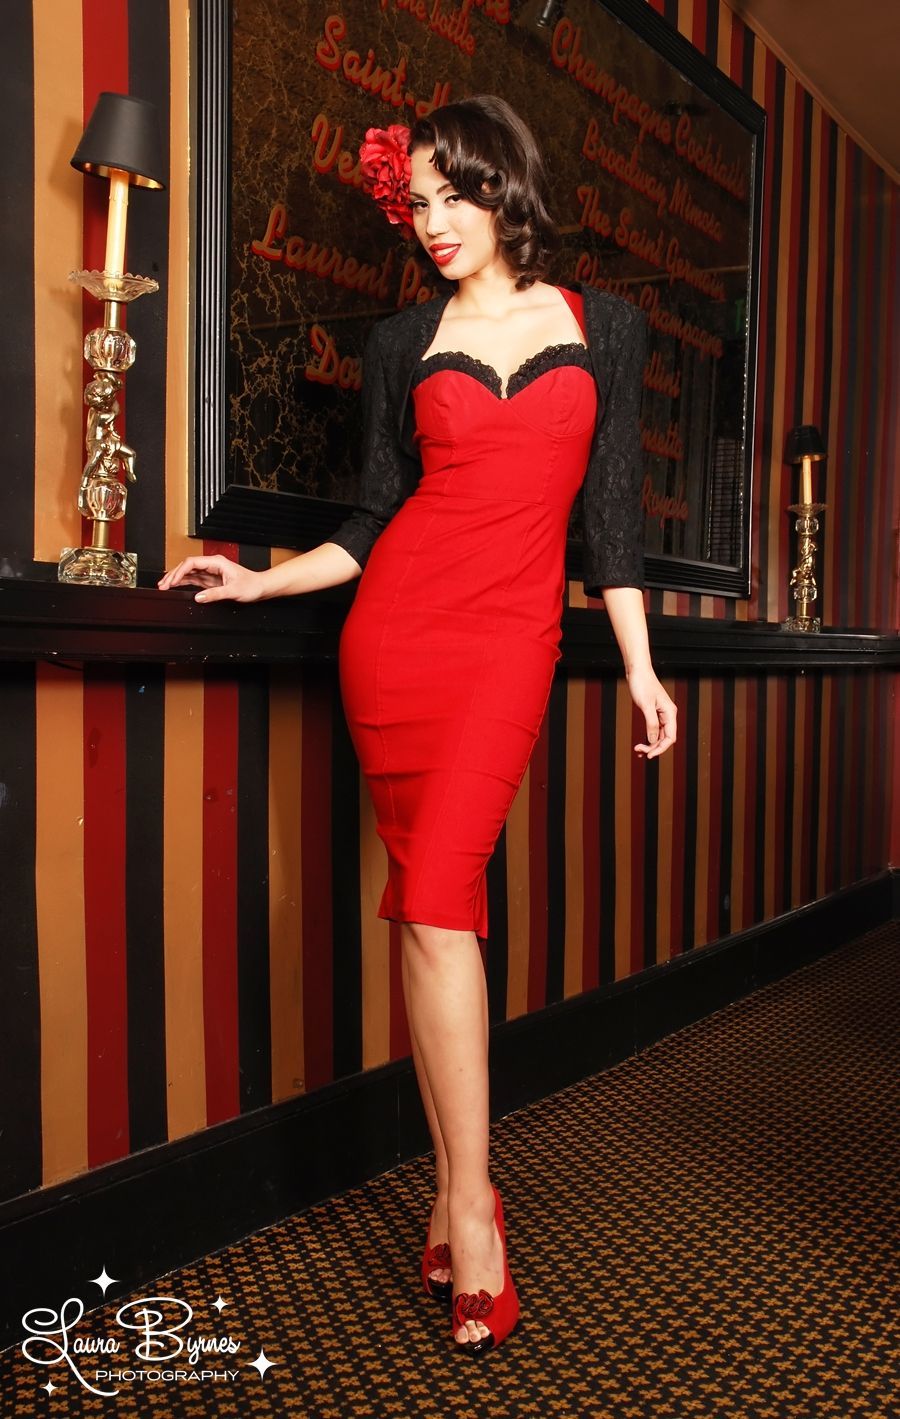 Masuimi Dress in Red Bengaline with Black Lace - Pinup Couture turns up the volume on our classic wiggle silhouette with amazing body enhancing details and our high-quality stretch bengaline fabric. Bust cups are built in and framed with lace trim, and the seaming is strategic to cinch in your waist line and emphasize your best features! Double kick pleats and zipper finish up the back for a dress as sexy as Masuimi herself.